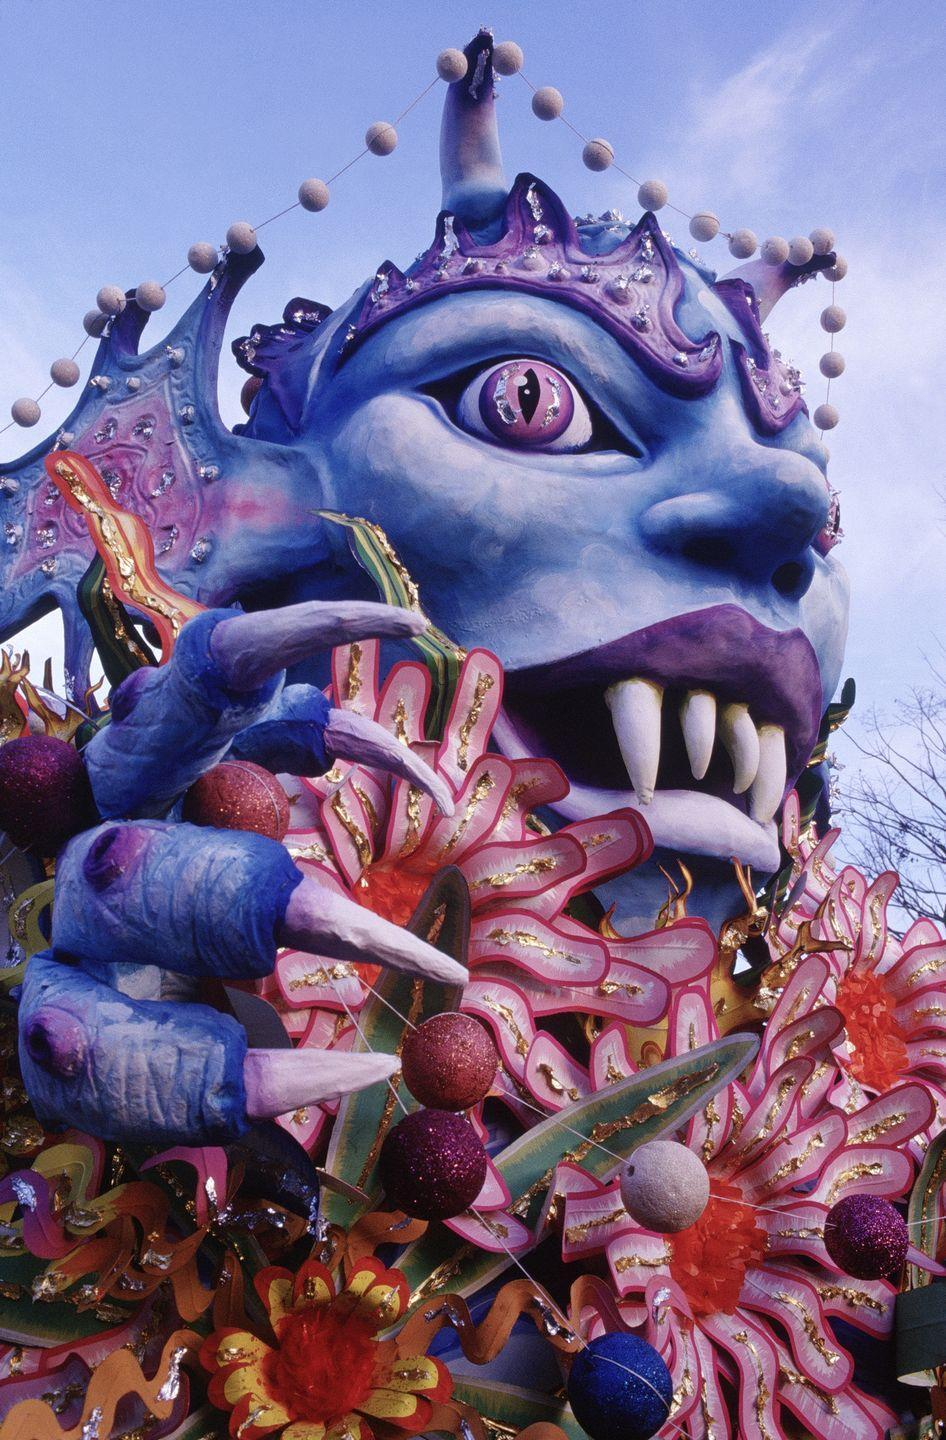 <p>Each parade is supposed to have a theme, which can be derived from history, children's stories, mythology, entertainment, and more. The floats built by krewes then reflect the theme and range in scale and spectacle.</p>